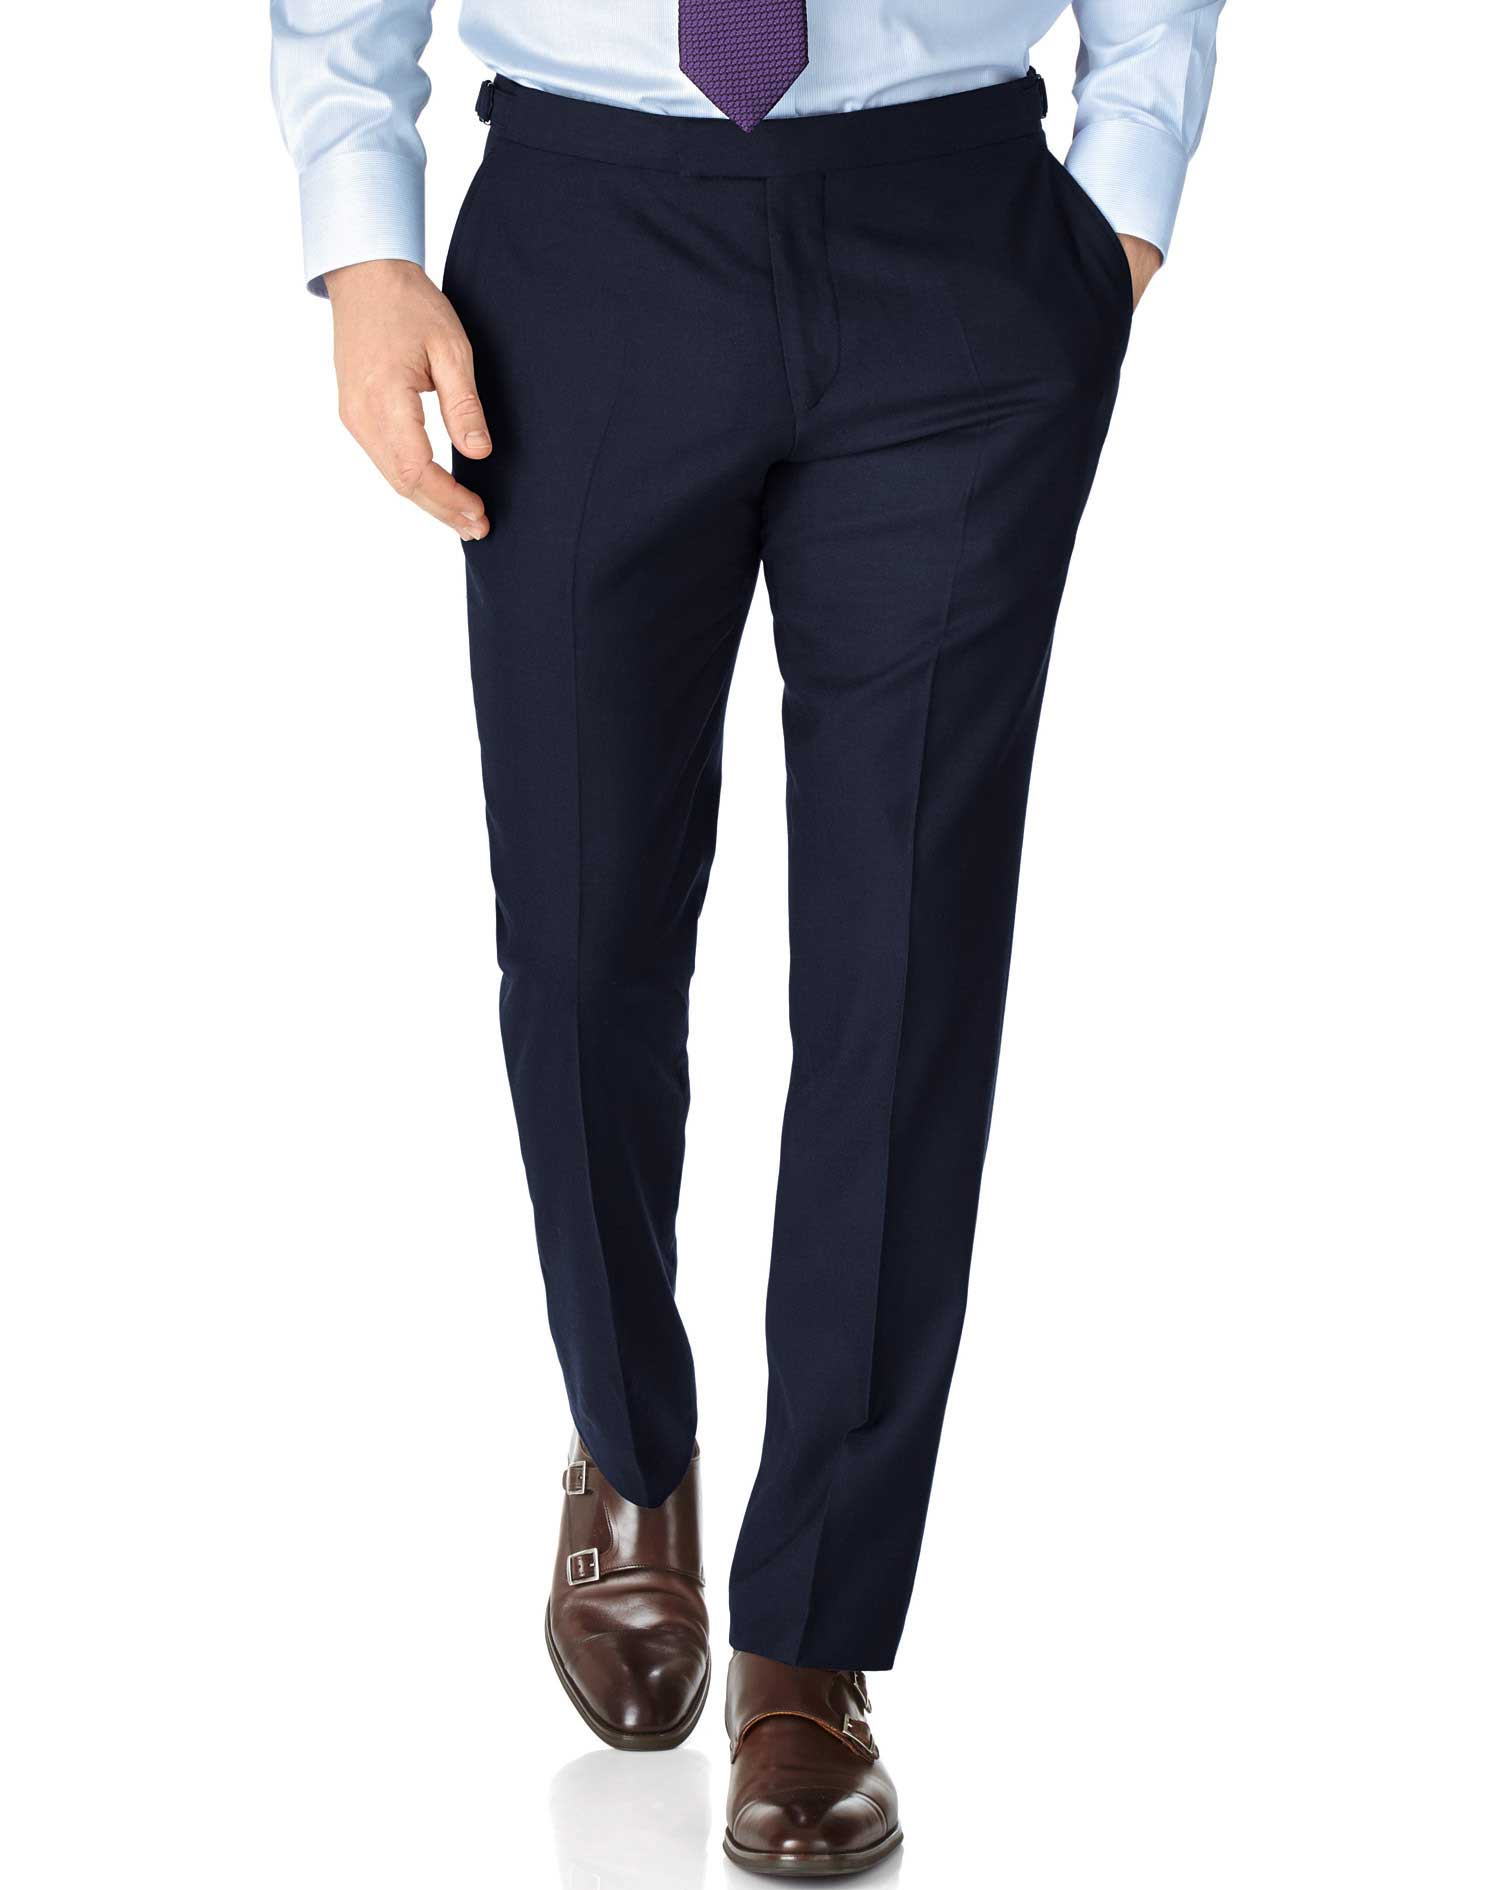 Navy Slim Fit British Serge Luxury Suit Trousers Size W32 L34 by Charles Tyrwhitt